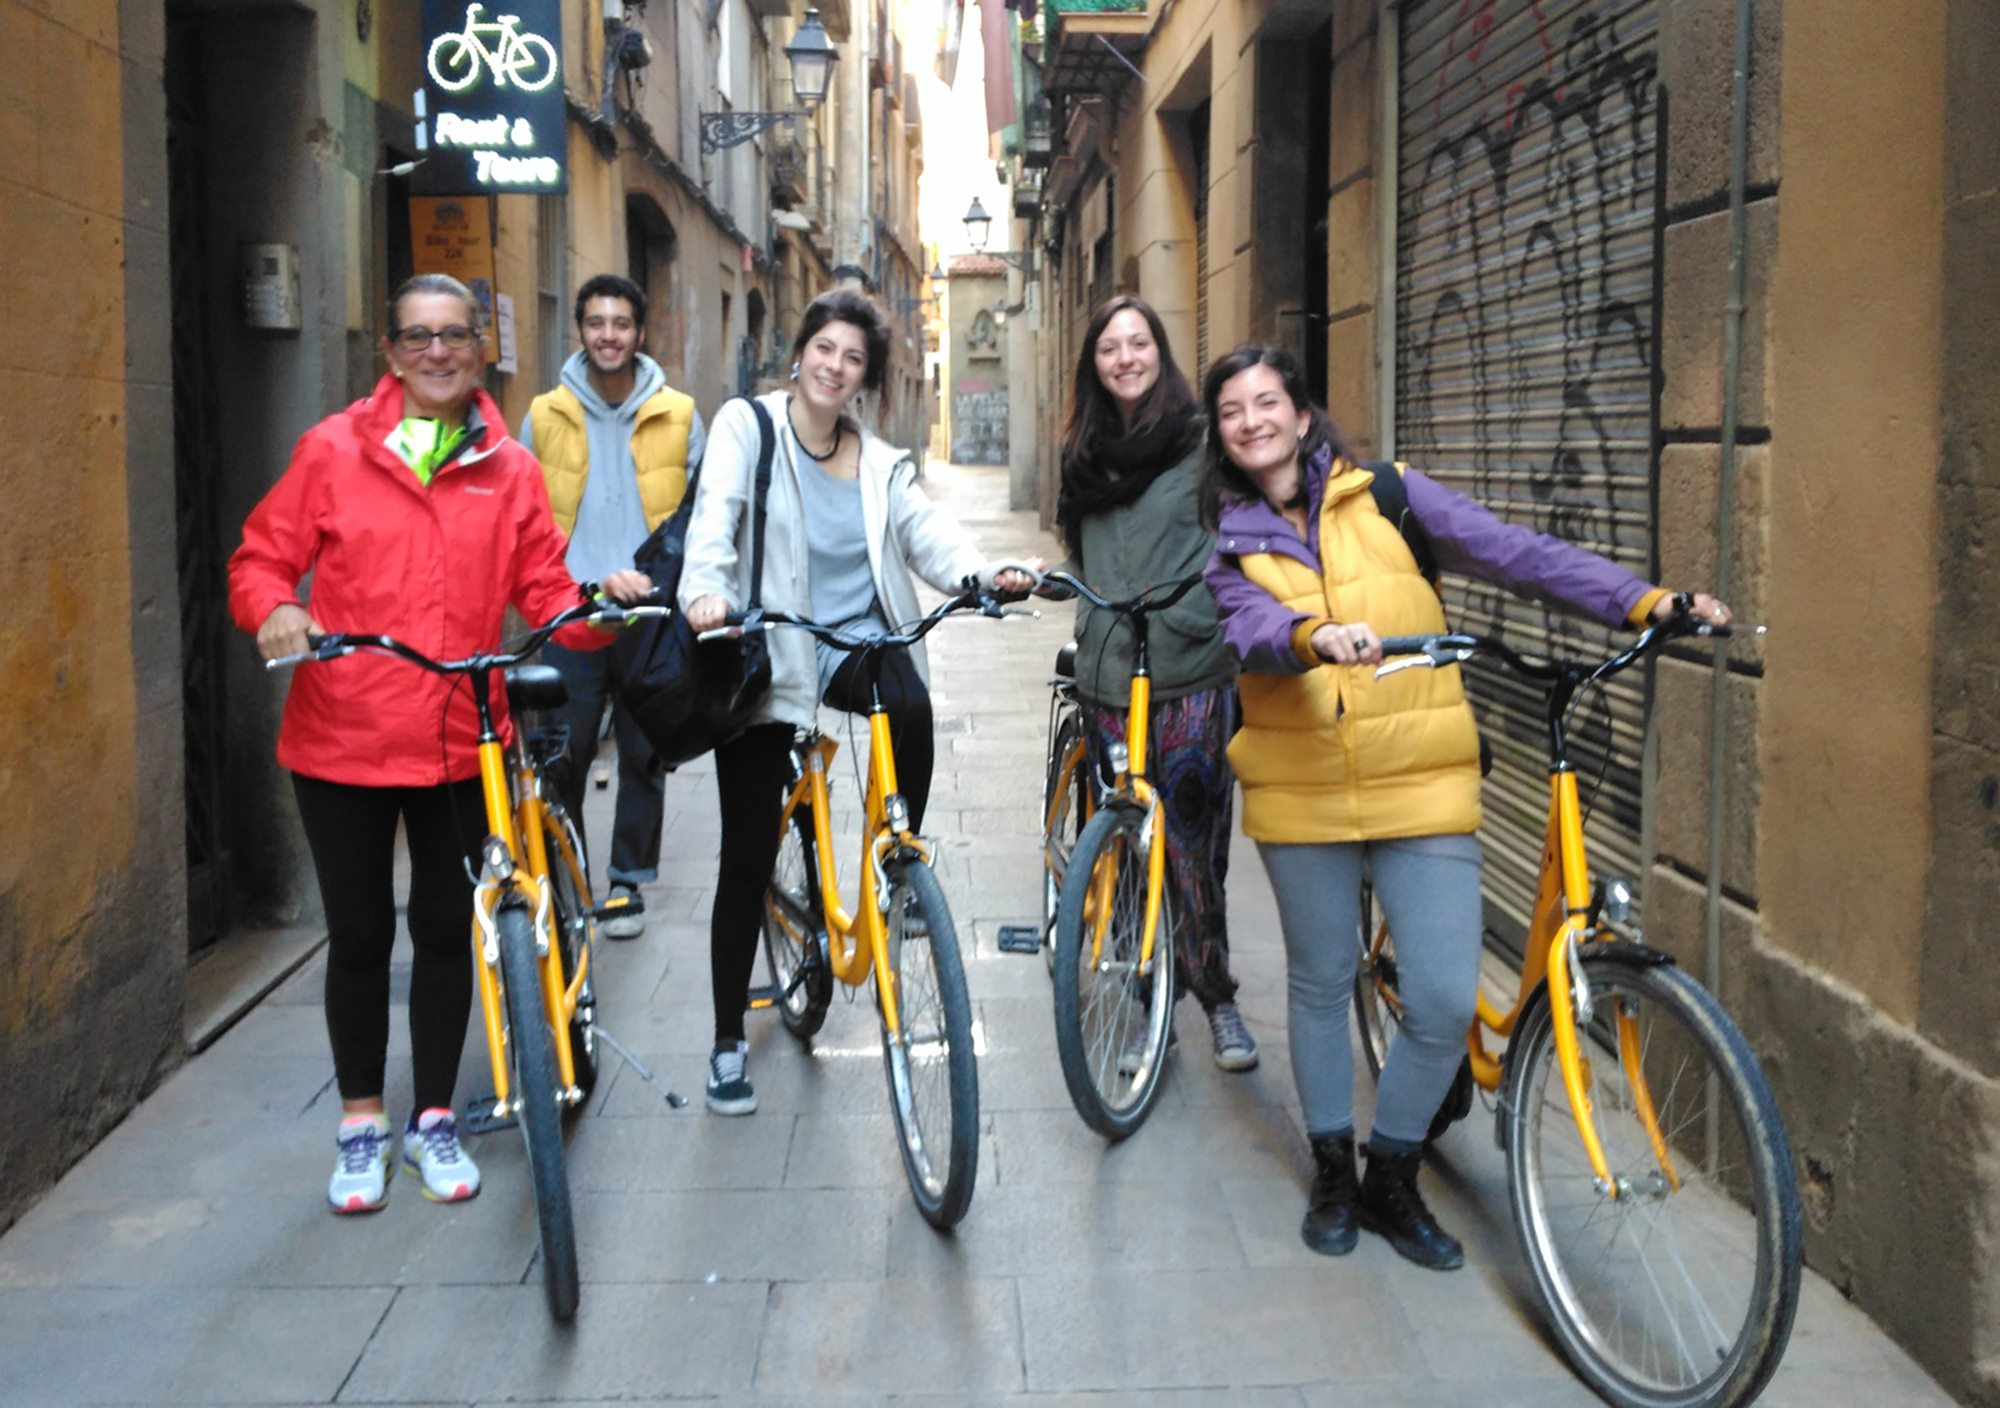 Gothic-Modernist Barcelona Bike Tours visits reservation booking online